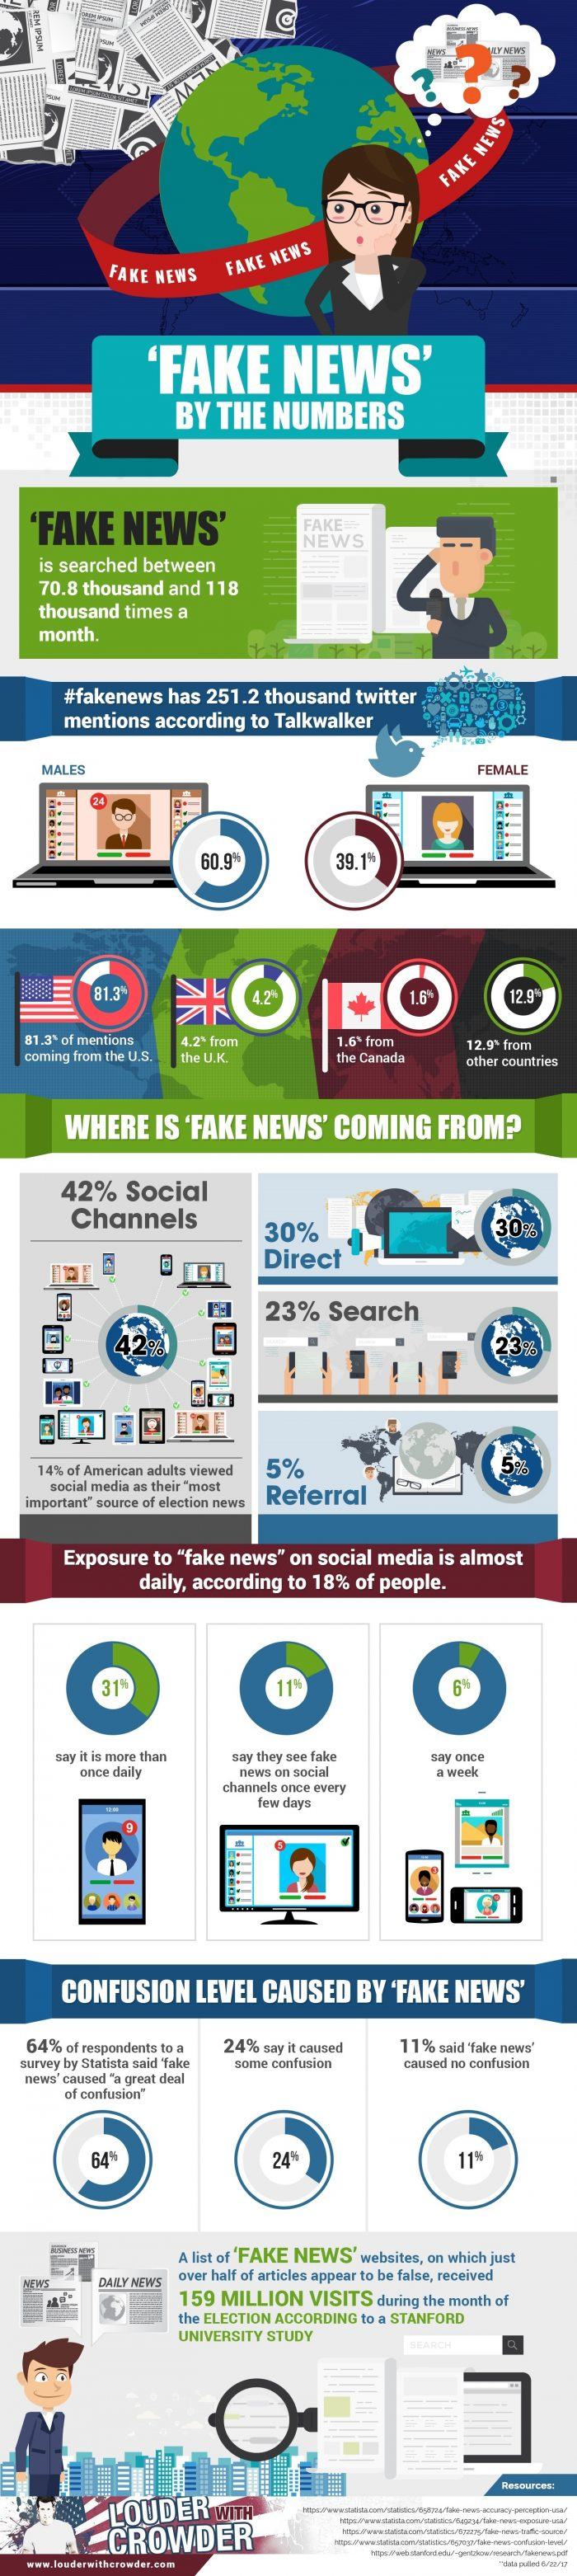 Fake News Numbers Infographic 700x3124 1 1